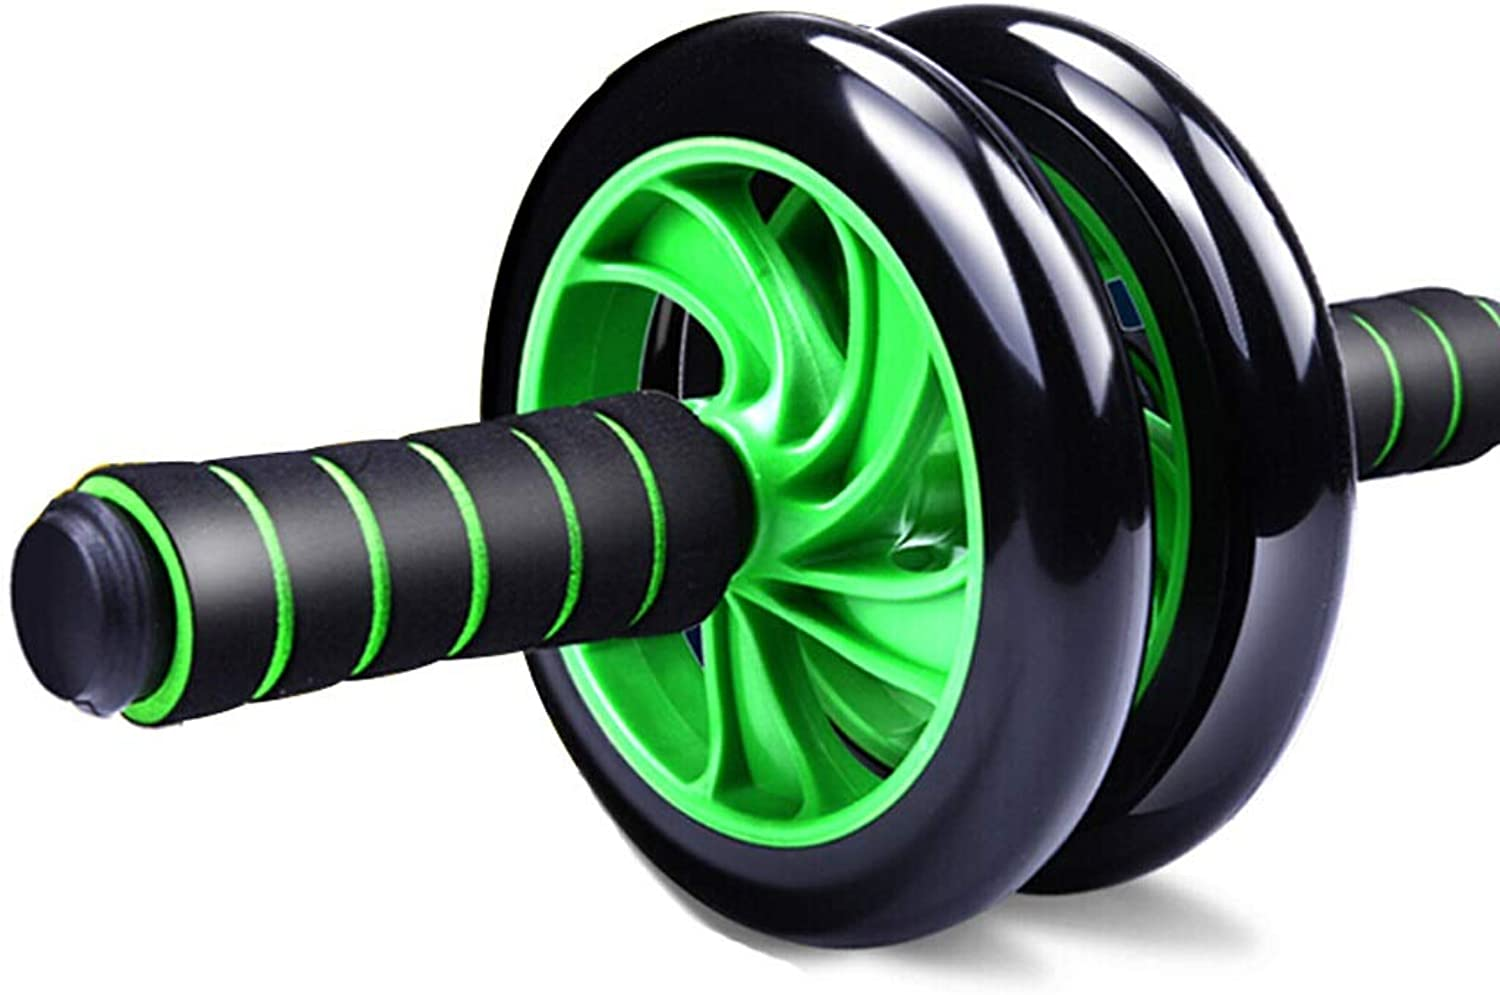 Abdominal Wheel Abdomen Core Strength Training Exercise Family Exercise Equipment Mute TwoWheel Abdominal Wheel (color   Green, Size   32  15.5  5.5cm)